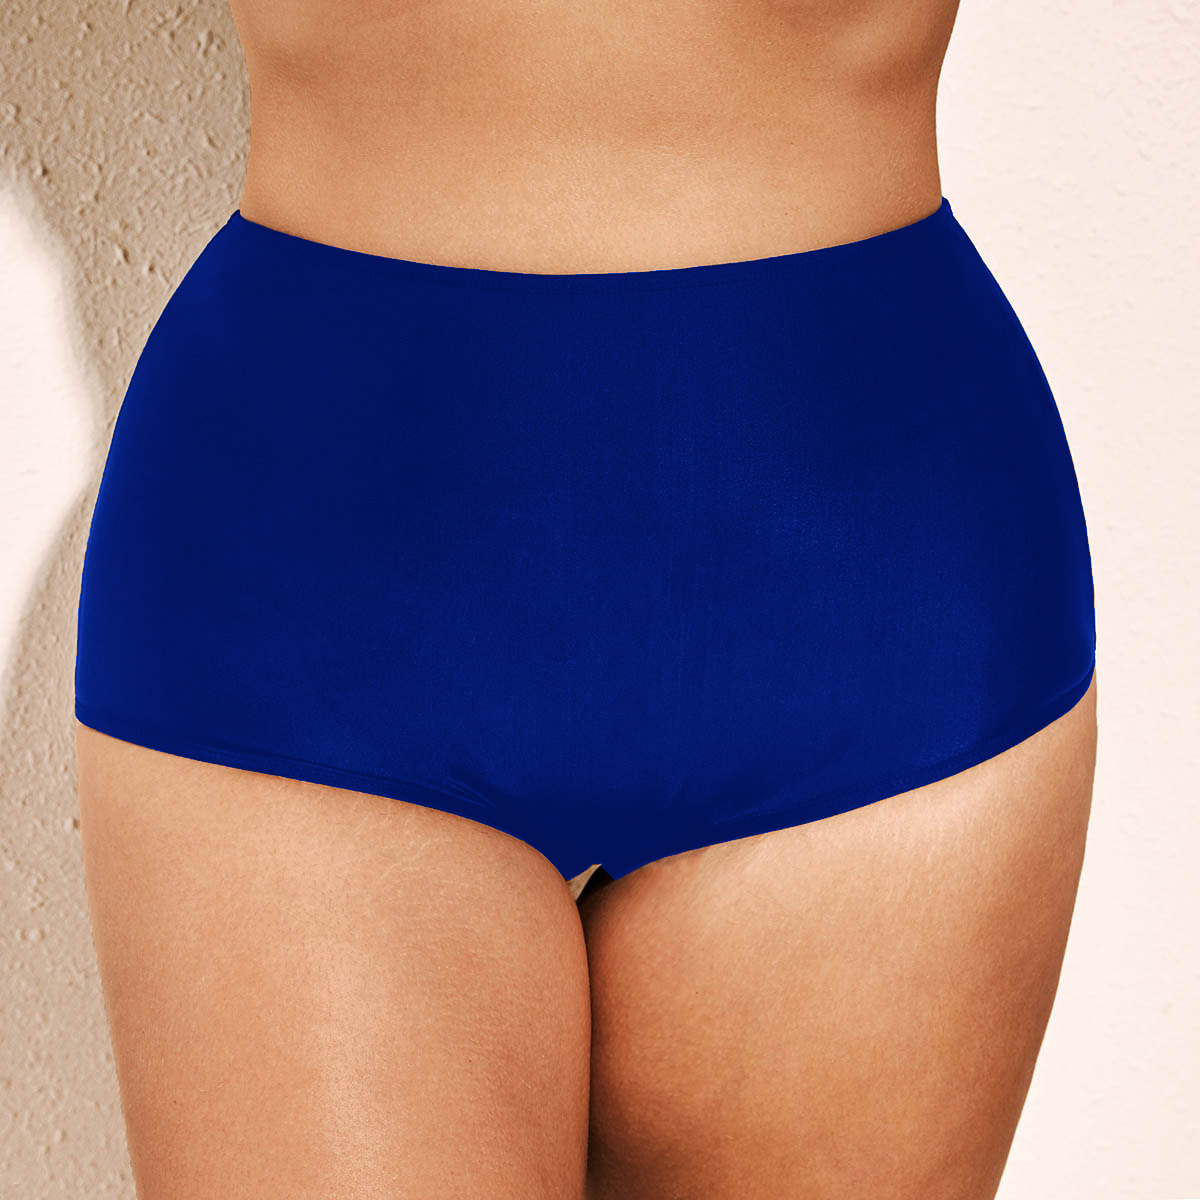 High Waist Blue Plus Size Swimwear Panty